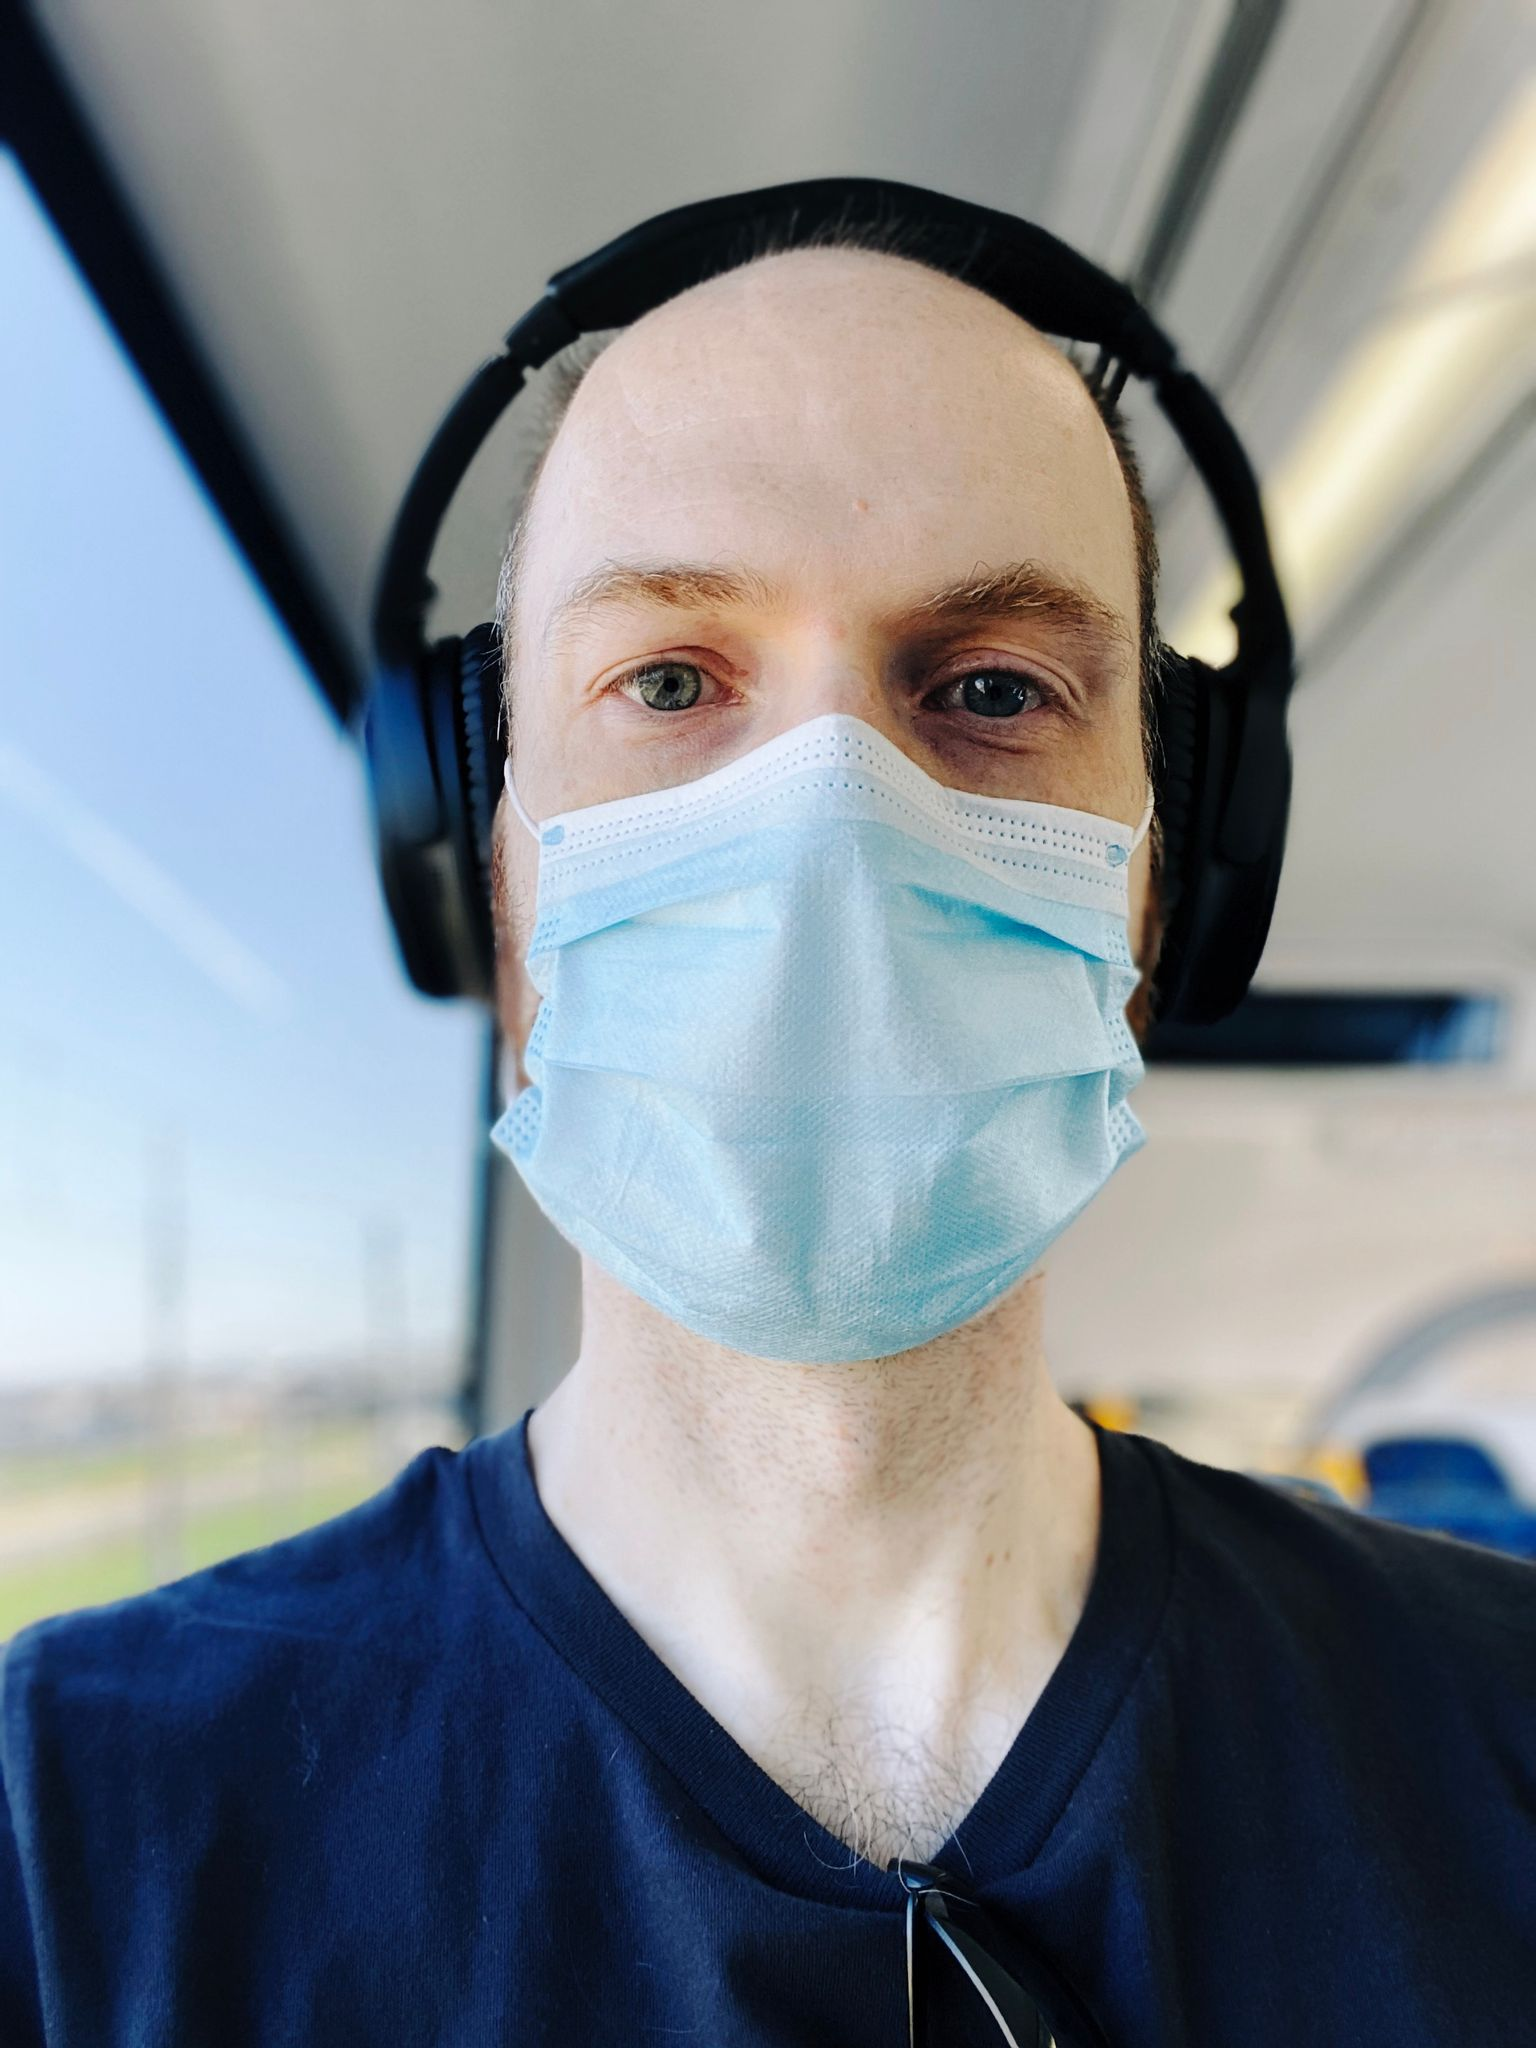 A selfie of me, a white man wearing a blue disposable mask and wearing headphones.